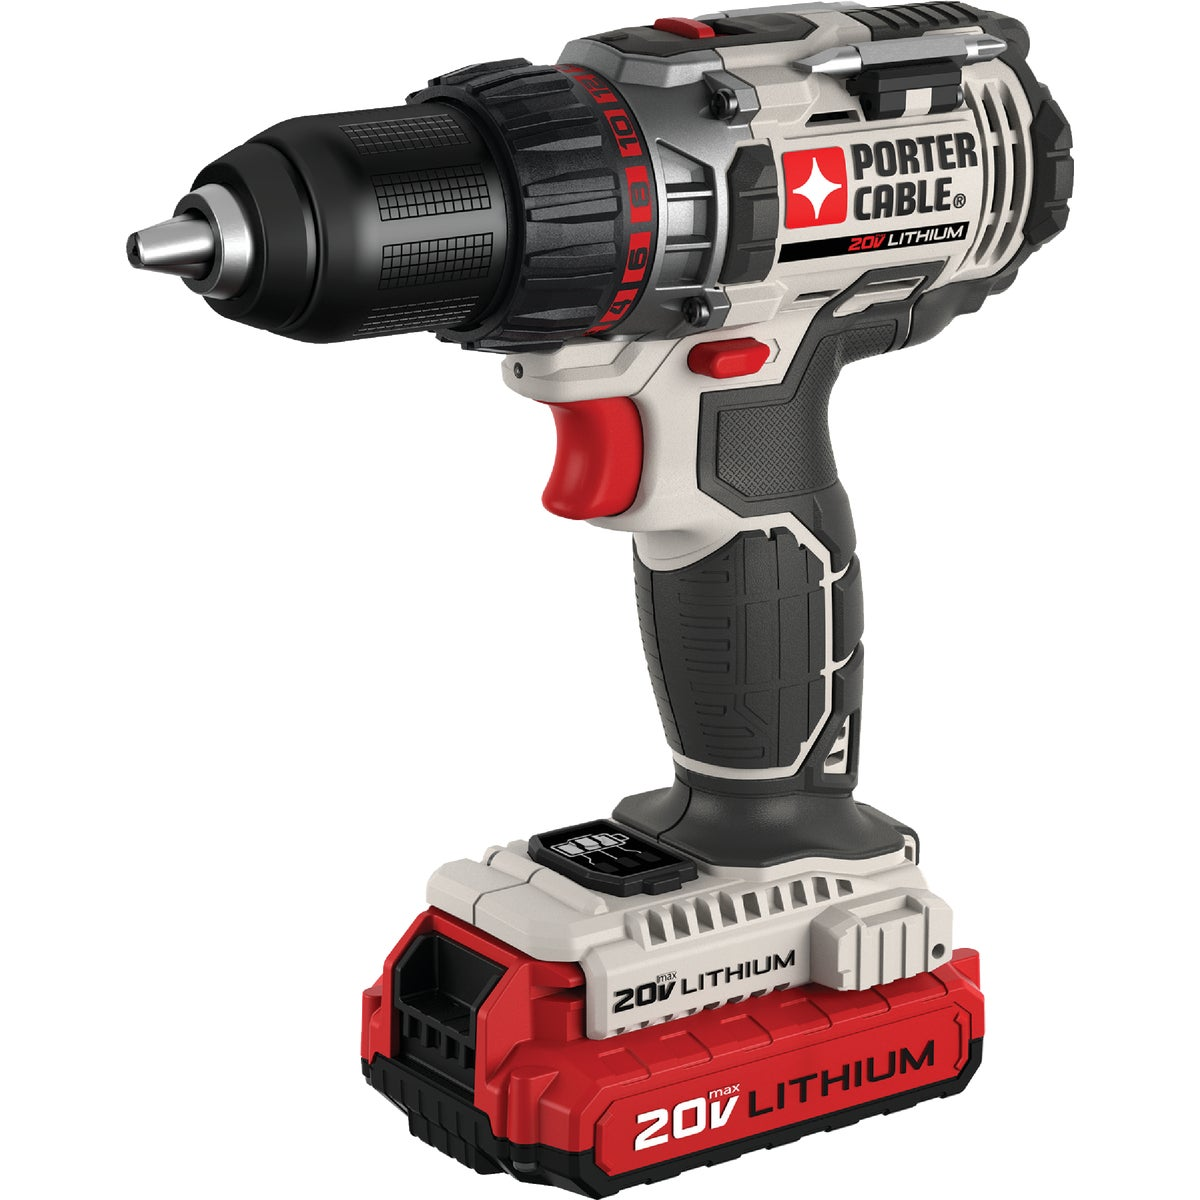 20V MAX DRILL DRIVER - PCCK600LB by Black & Decker